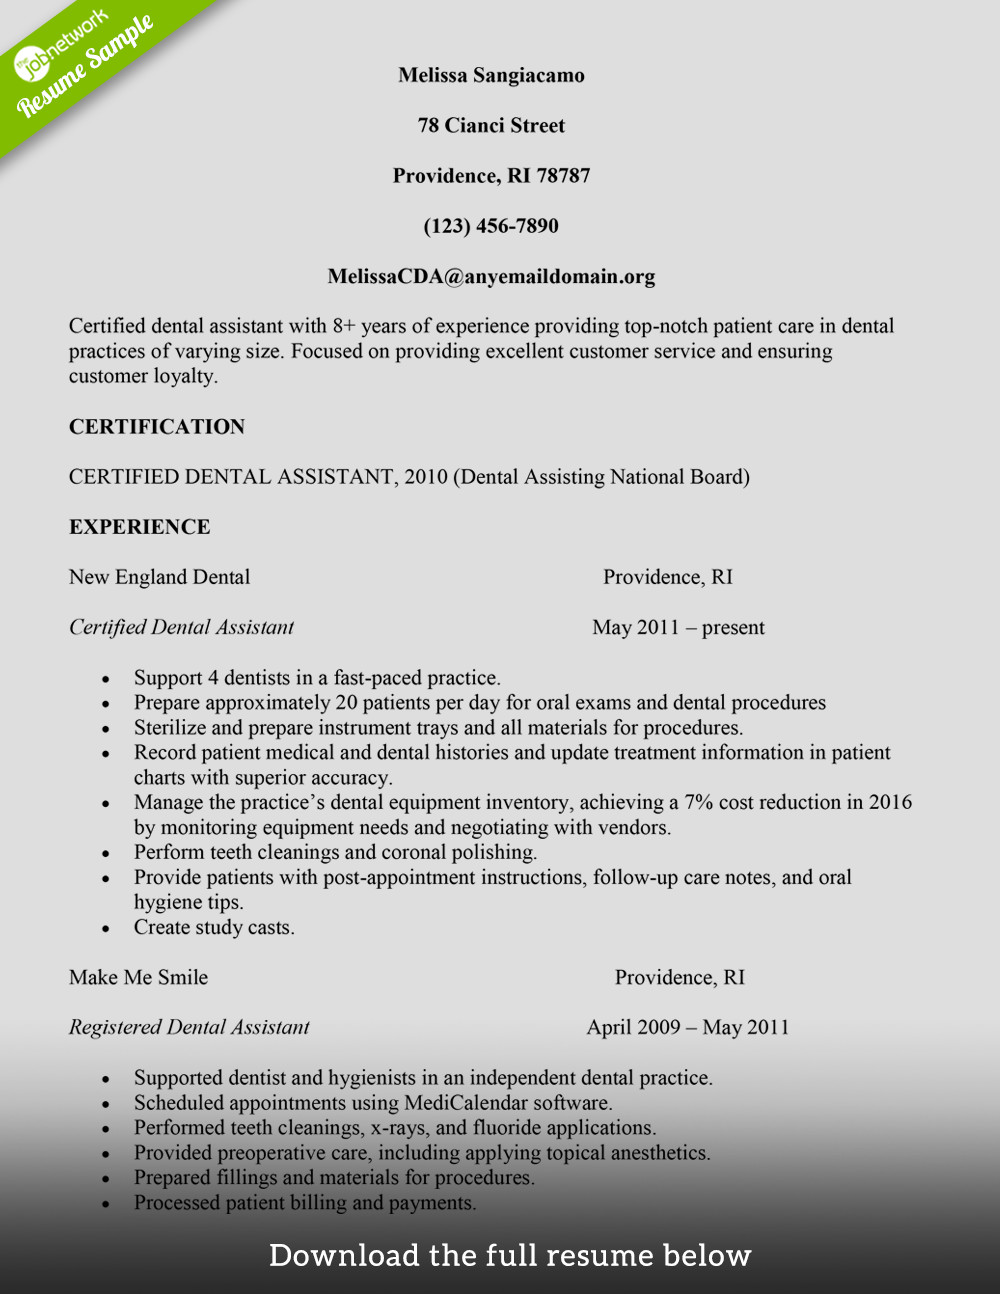 Dental assistant Resume Template How to Build A Great Dental assistant Resume Examples